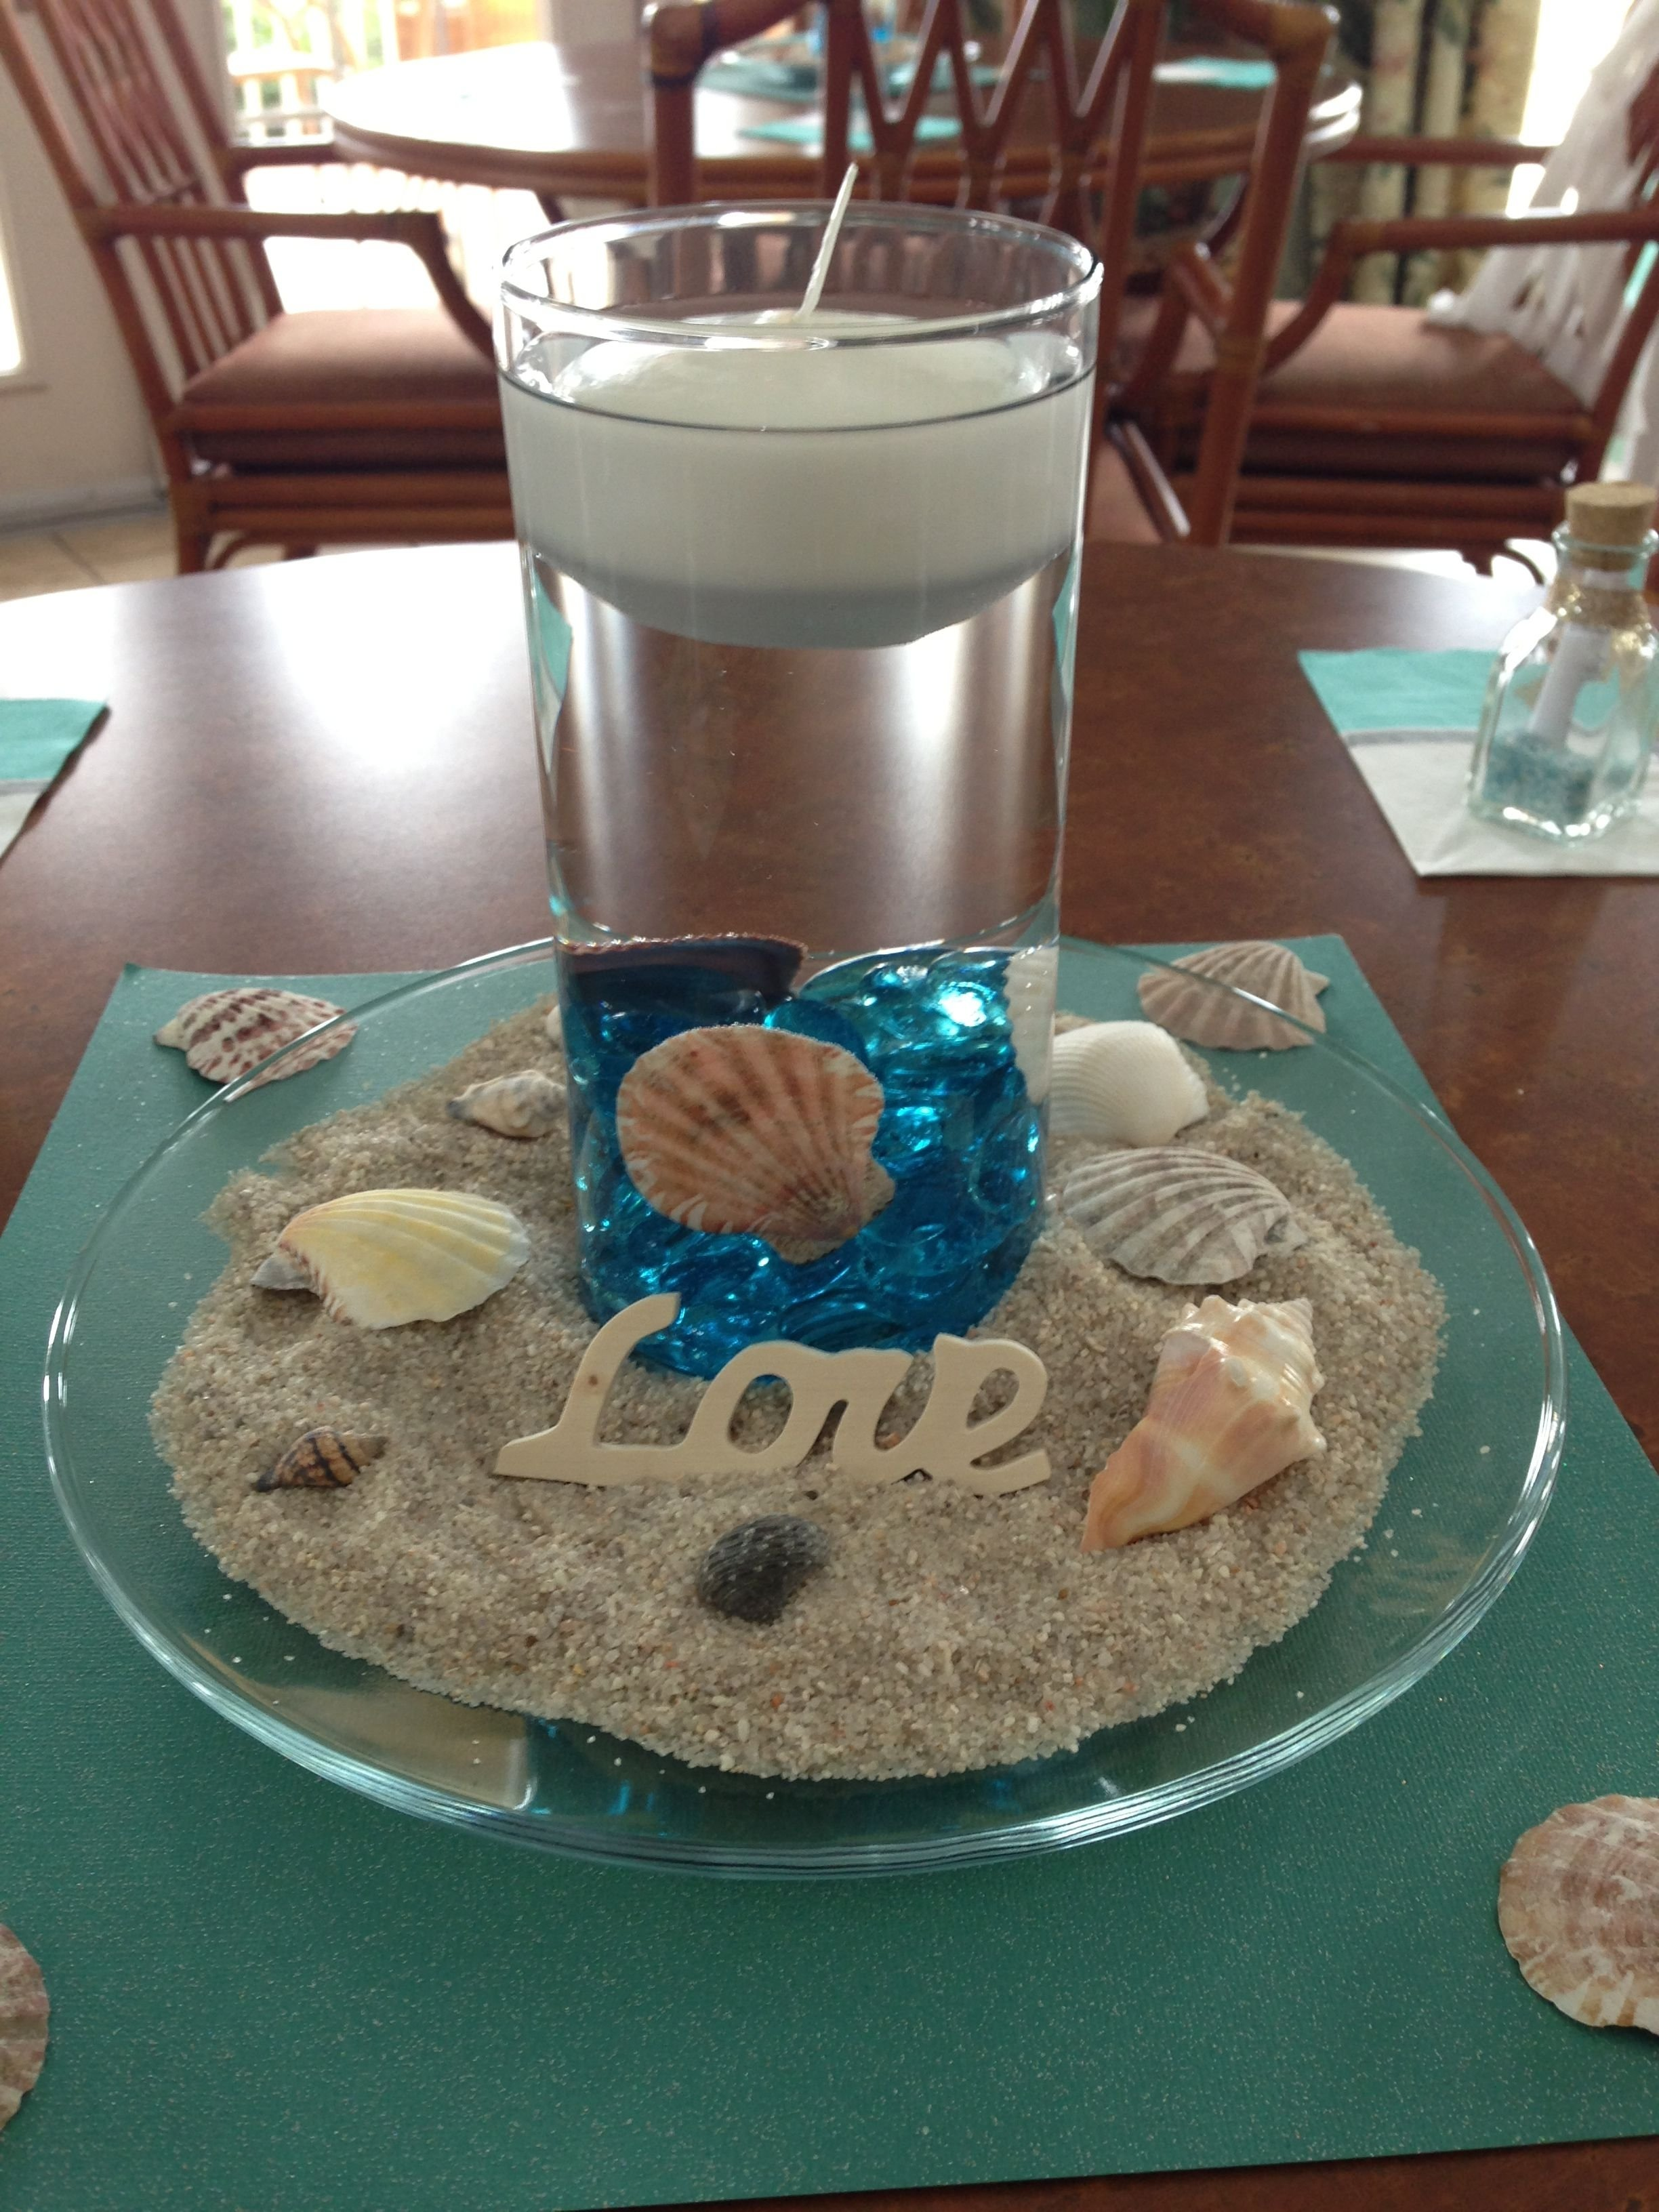 10 Great Beach Theme Bridal Shower Ideas roxie we can totally use those vases for this idea centerpiece